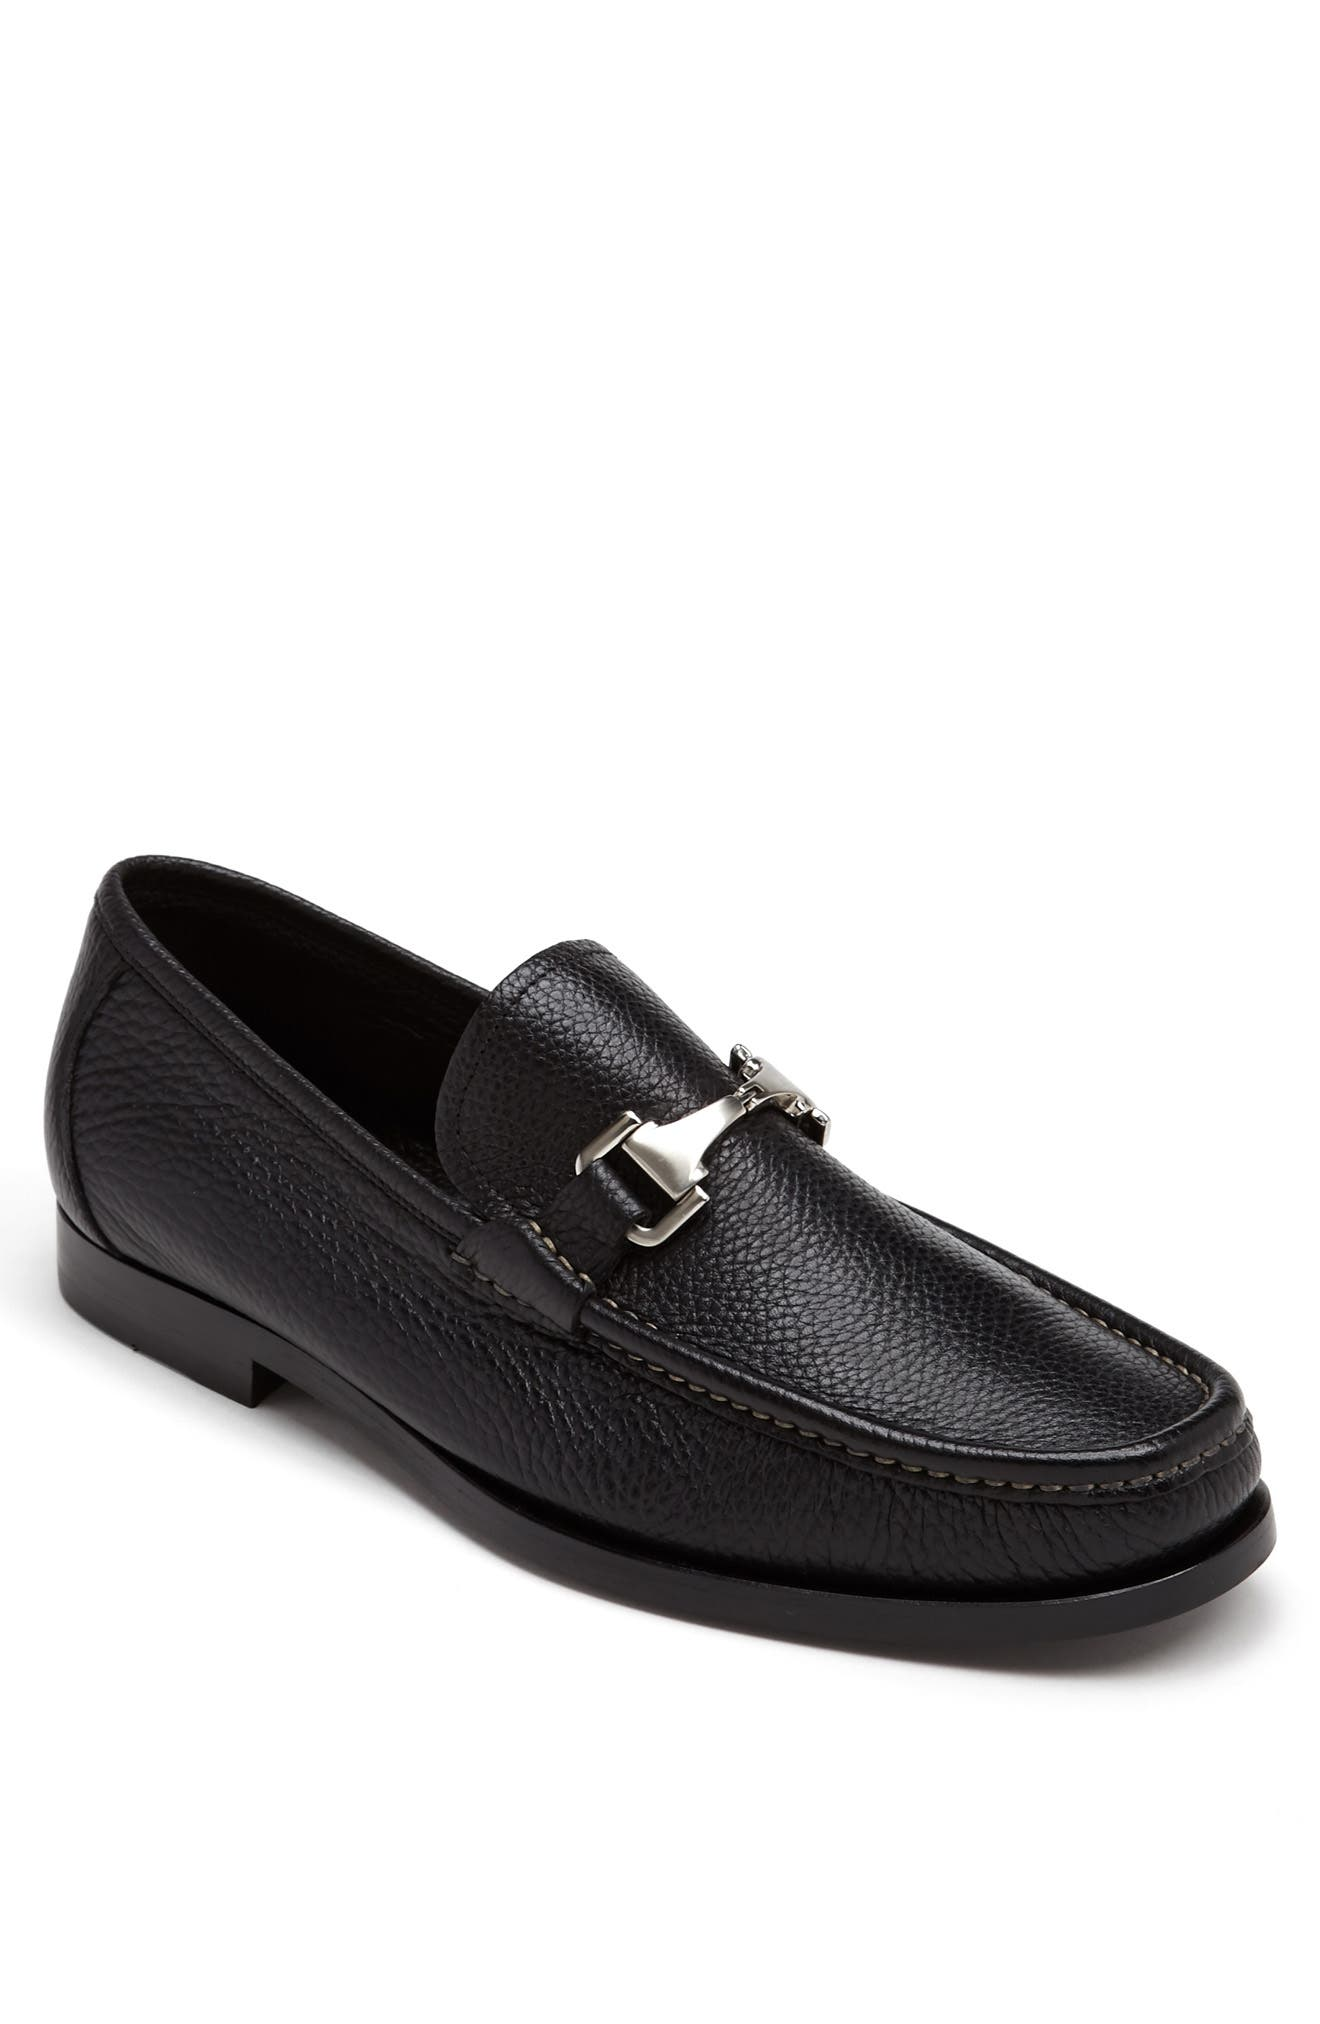 'Firenze' Bit Loafer,                             Alternate thumbnail 6, color,                             001